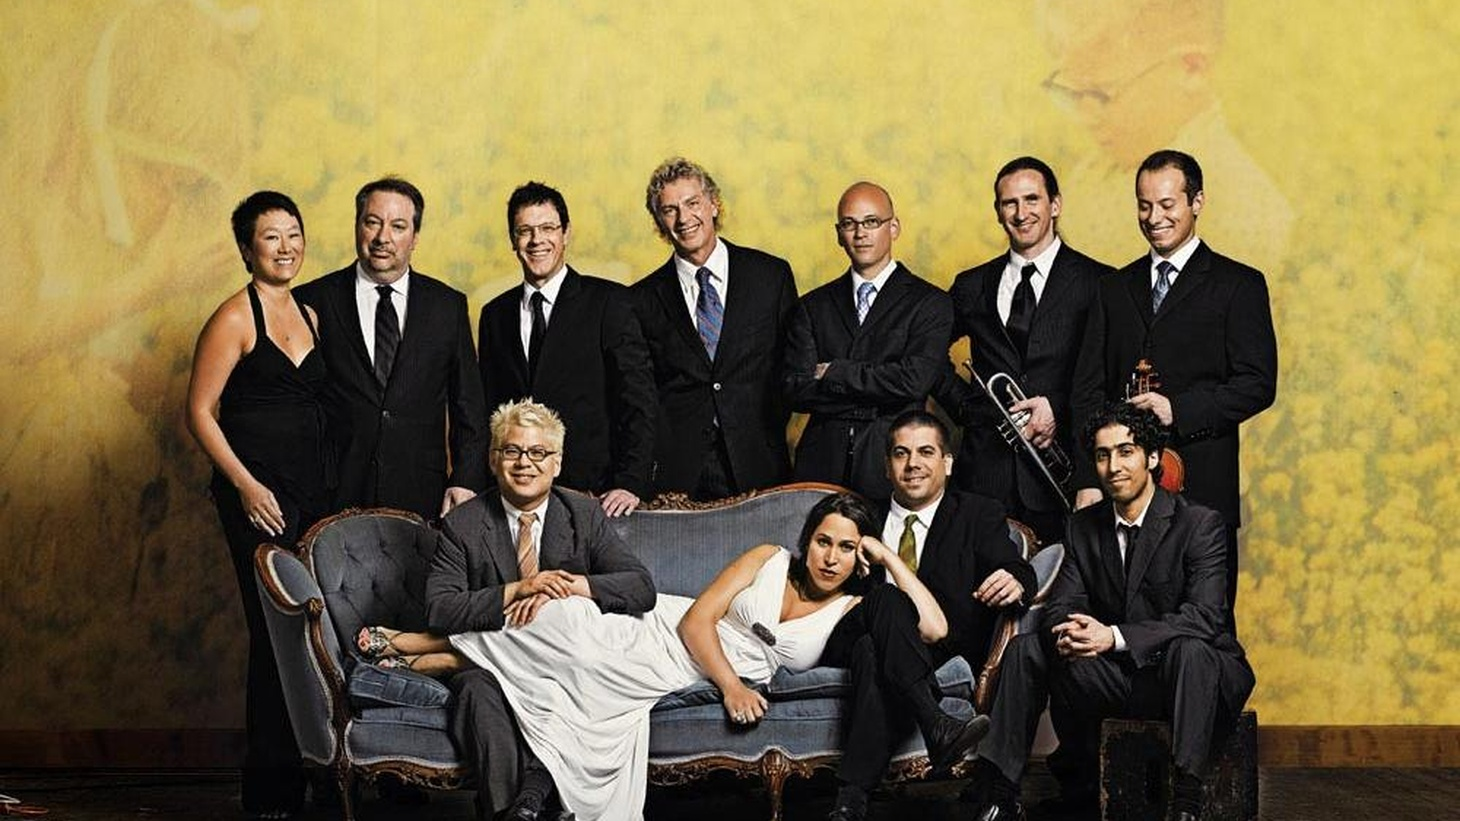 Pink Martini is an extraordinarily popular live band with songs that hop around genres, mixing contemporary pop influences with classical and world arrangements, as we hear in their latest release, Splendor in the Grass.